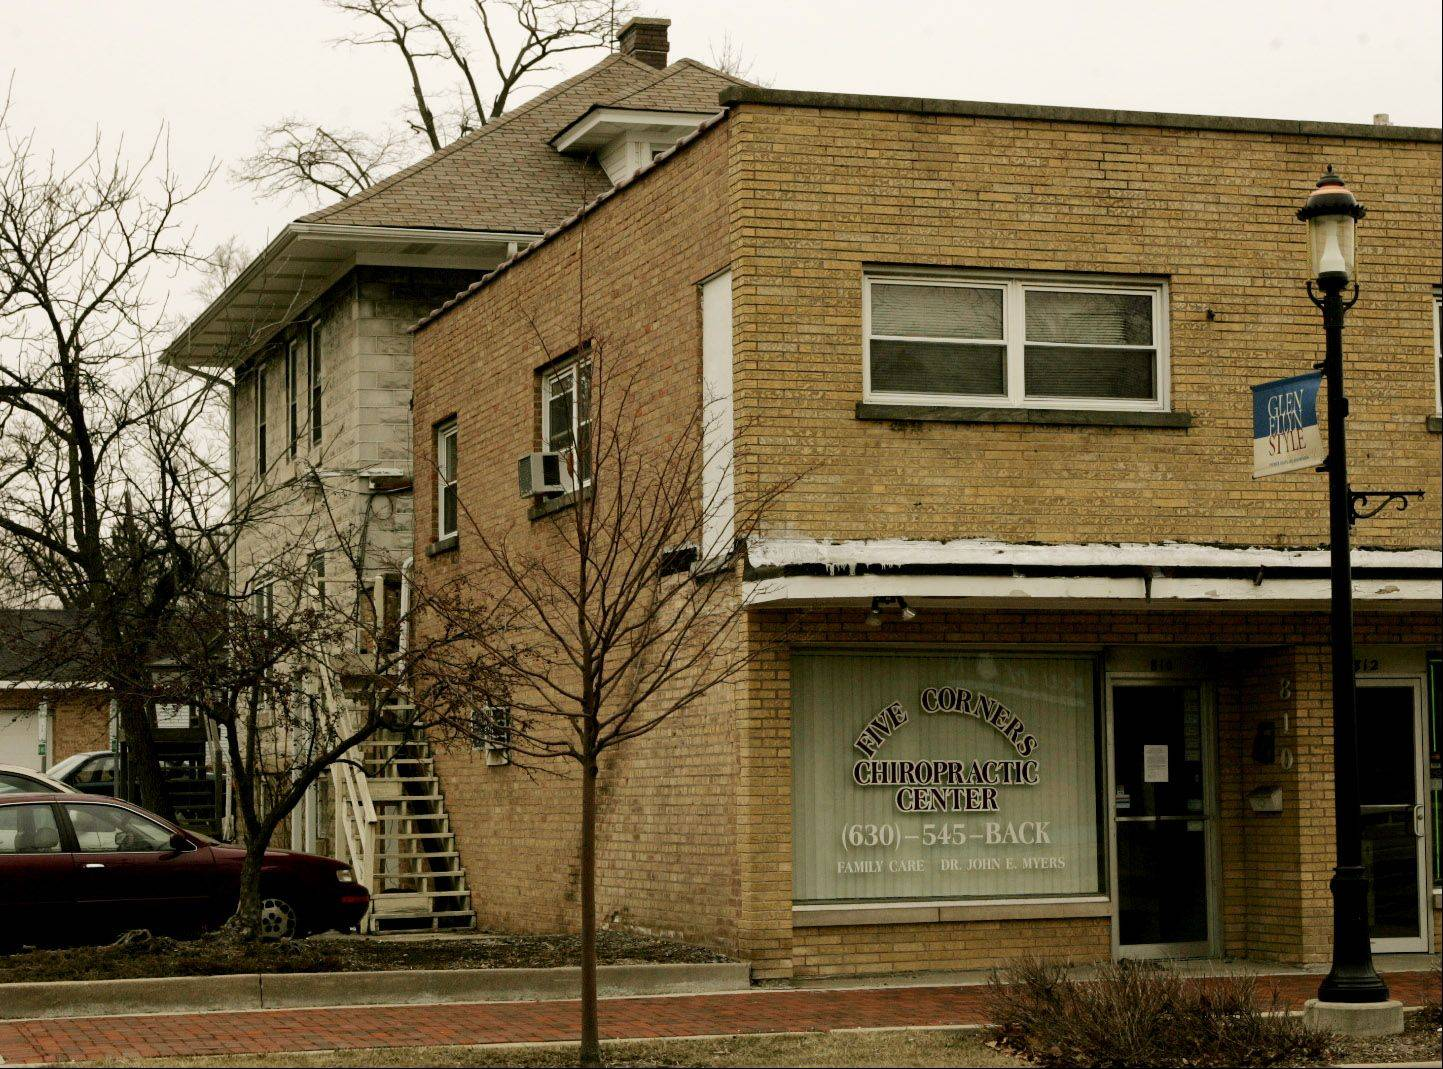 Preservationists question demolition of Glen Ellyn building